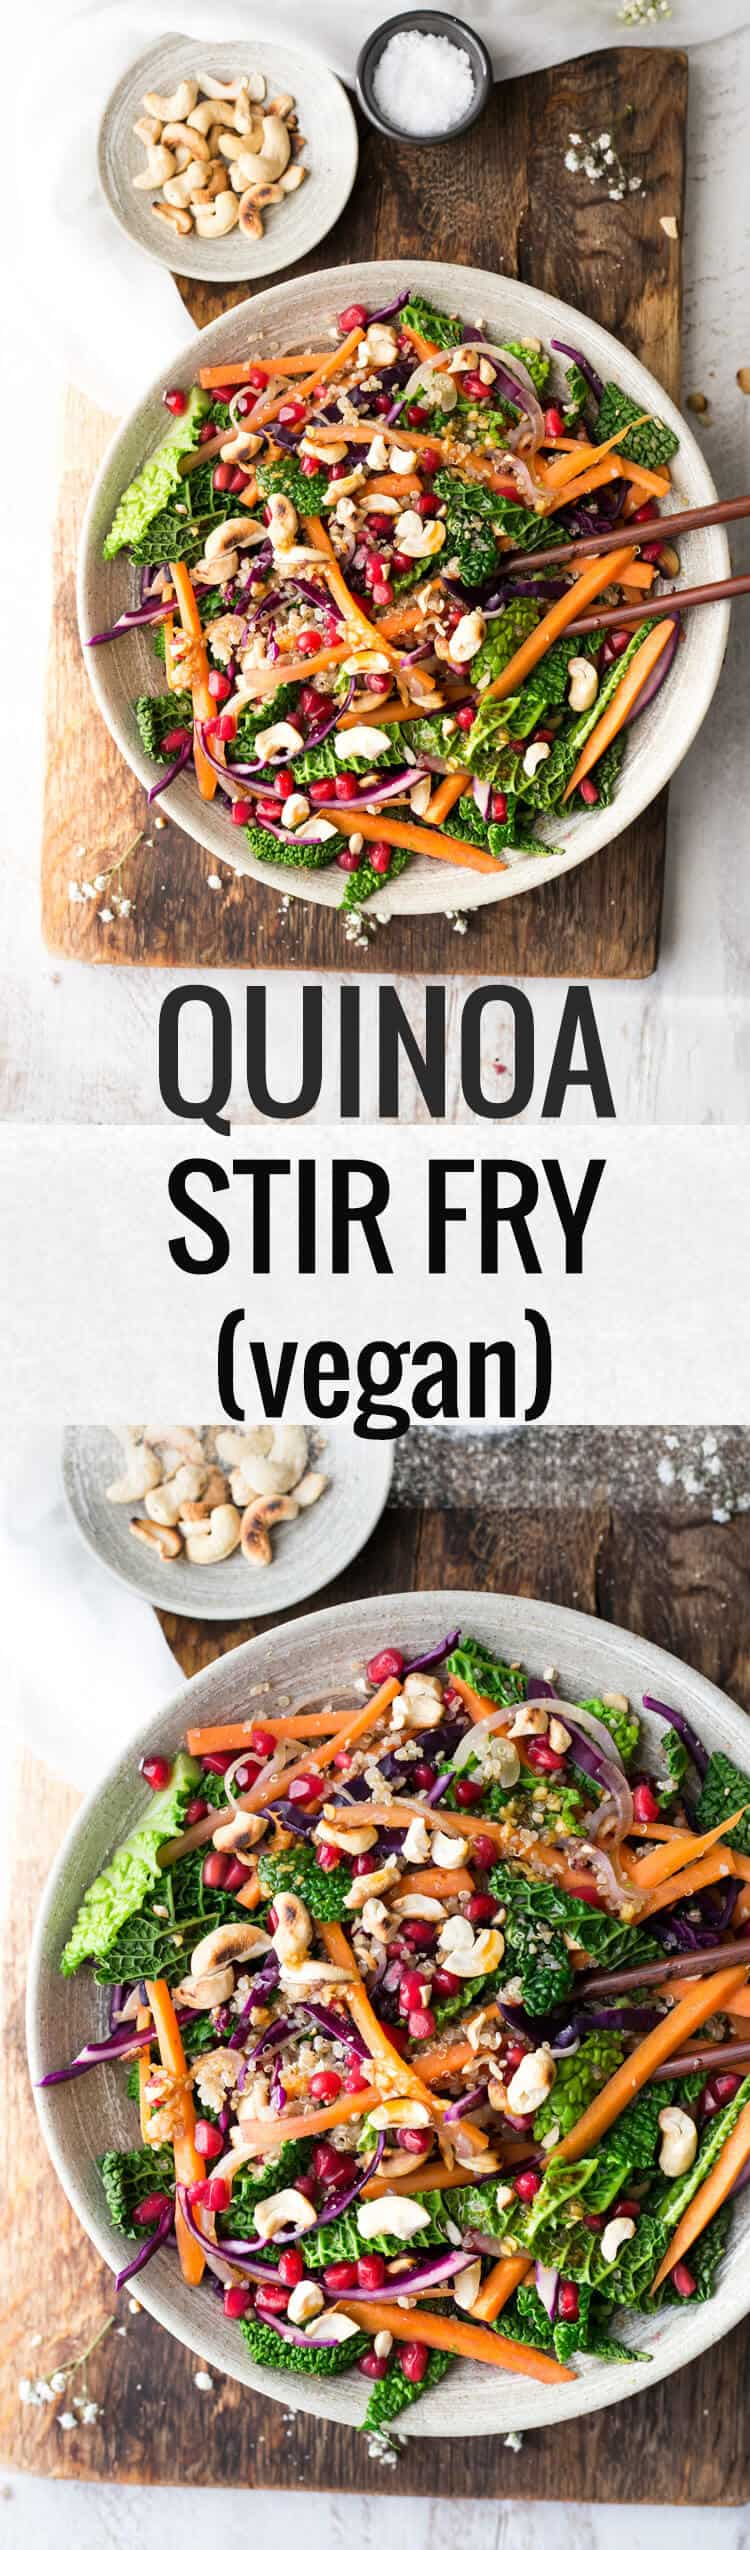 Super clean quinoa and vegetable stir fry with cashews and ginger and lime sauce. Perfect for lunch or dinner!   via @annabanana.co